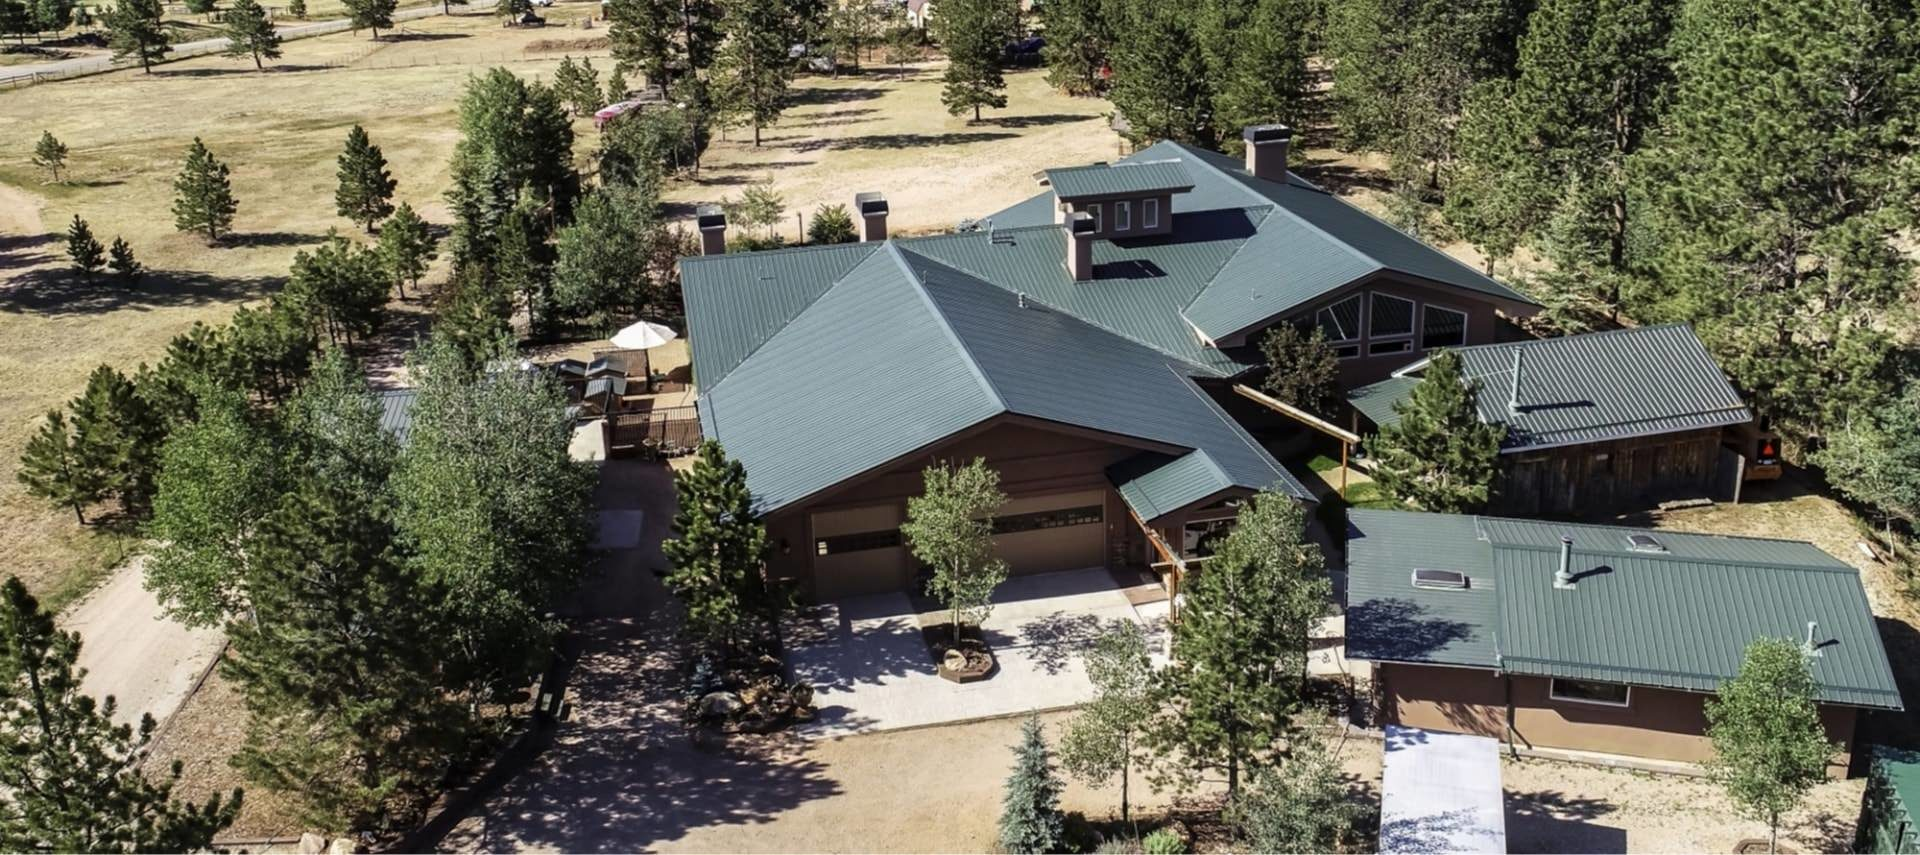 Aerial view of the property with green metal roof and surrounded by large pine trees